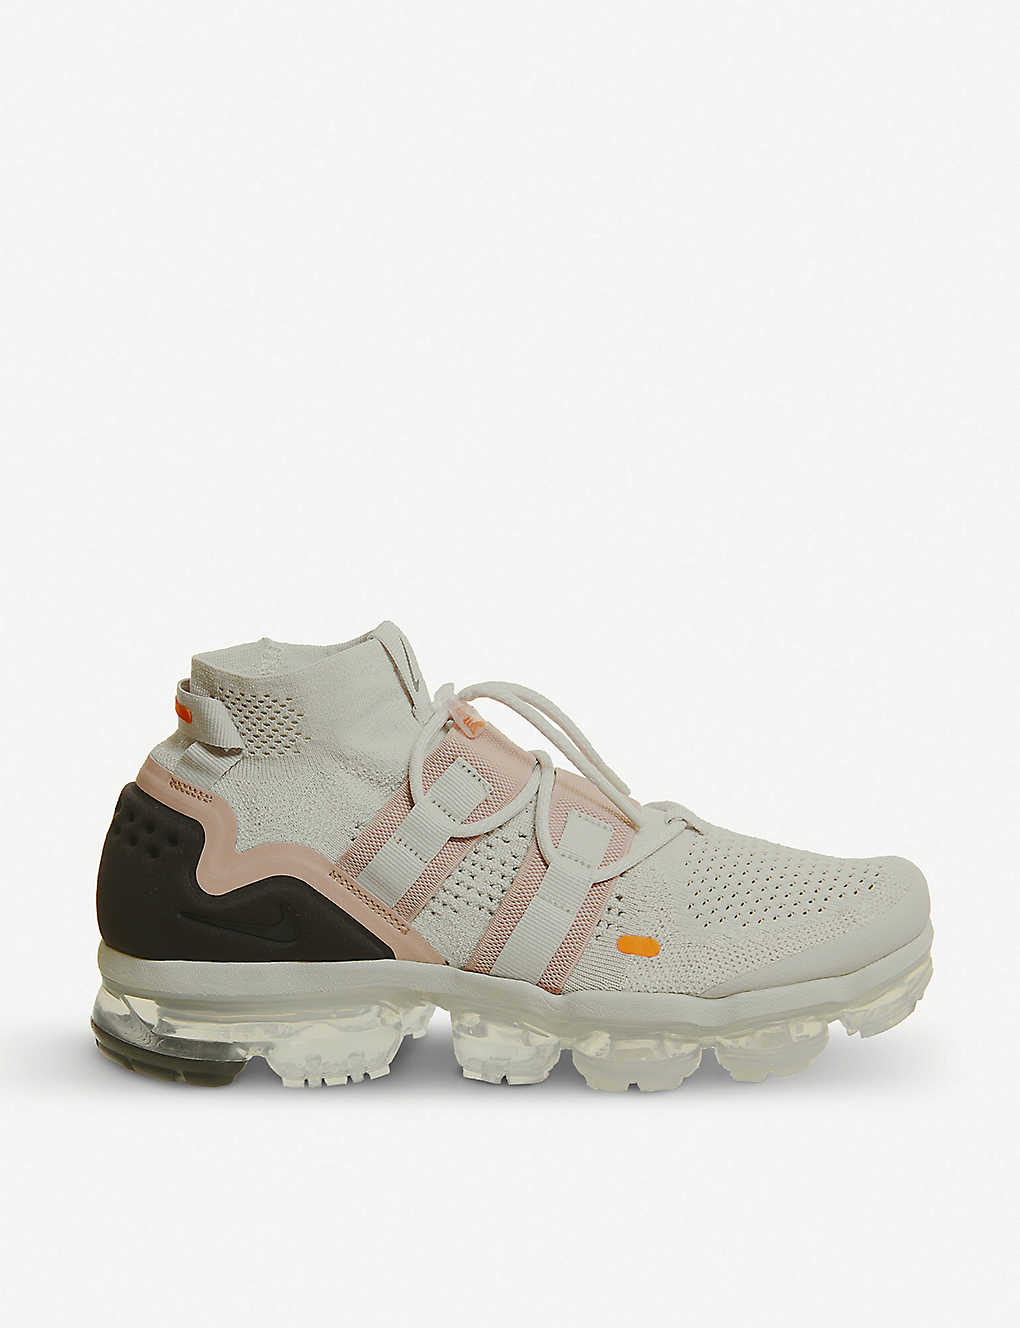 2f3a0b5f606eb NIKE - Air Vapormax Flyknit Utility trainers